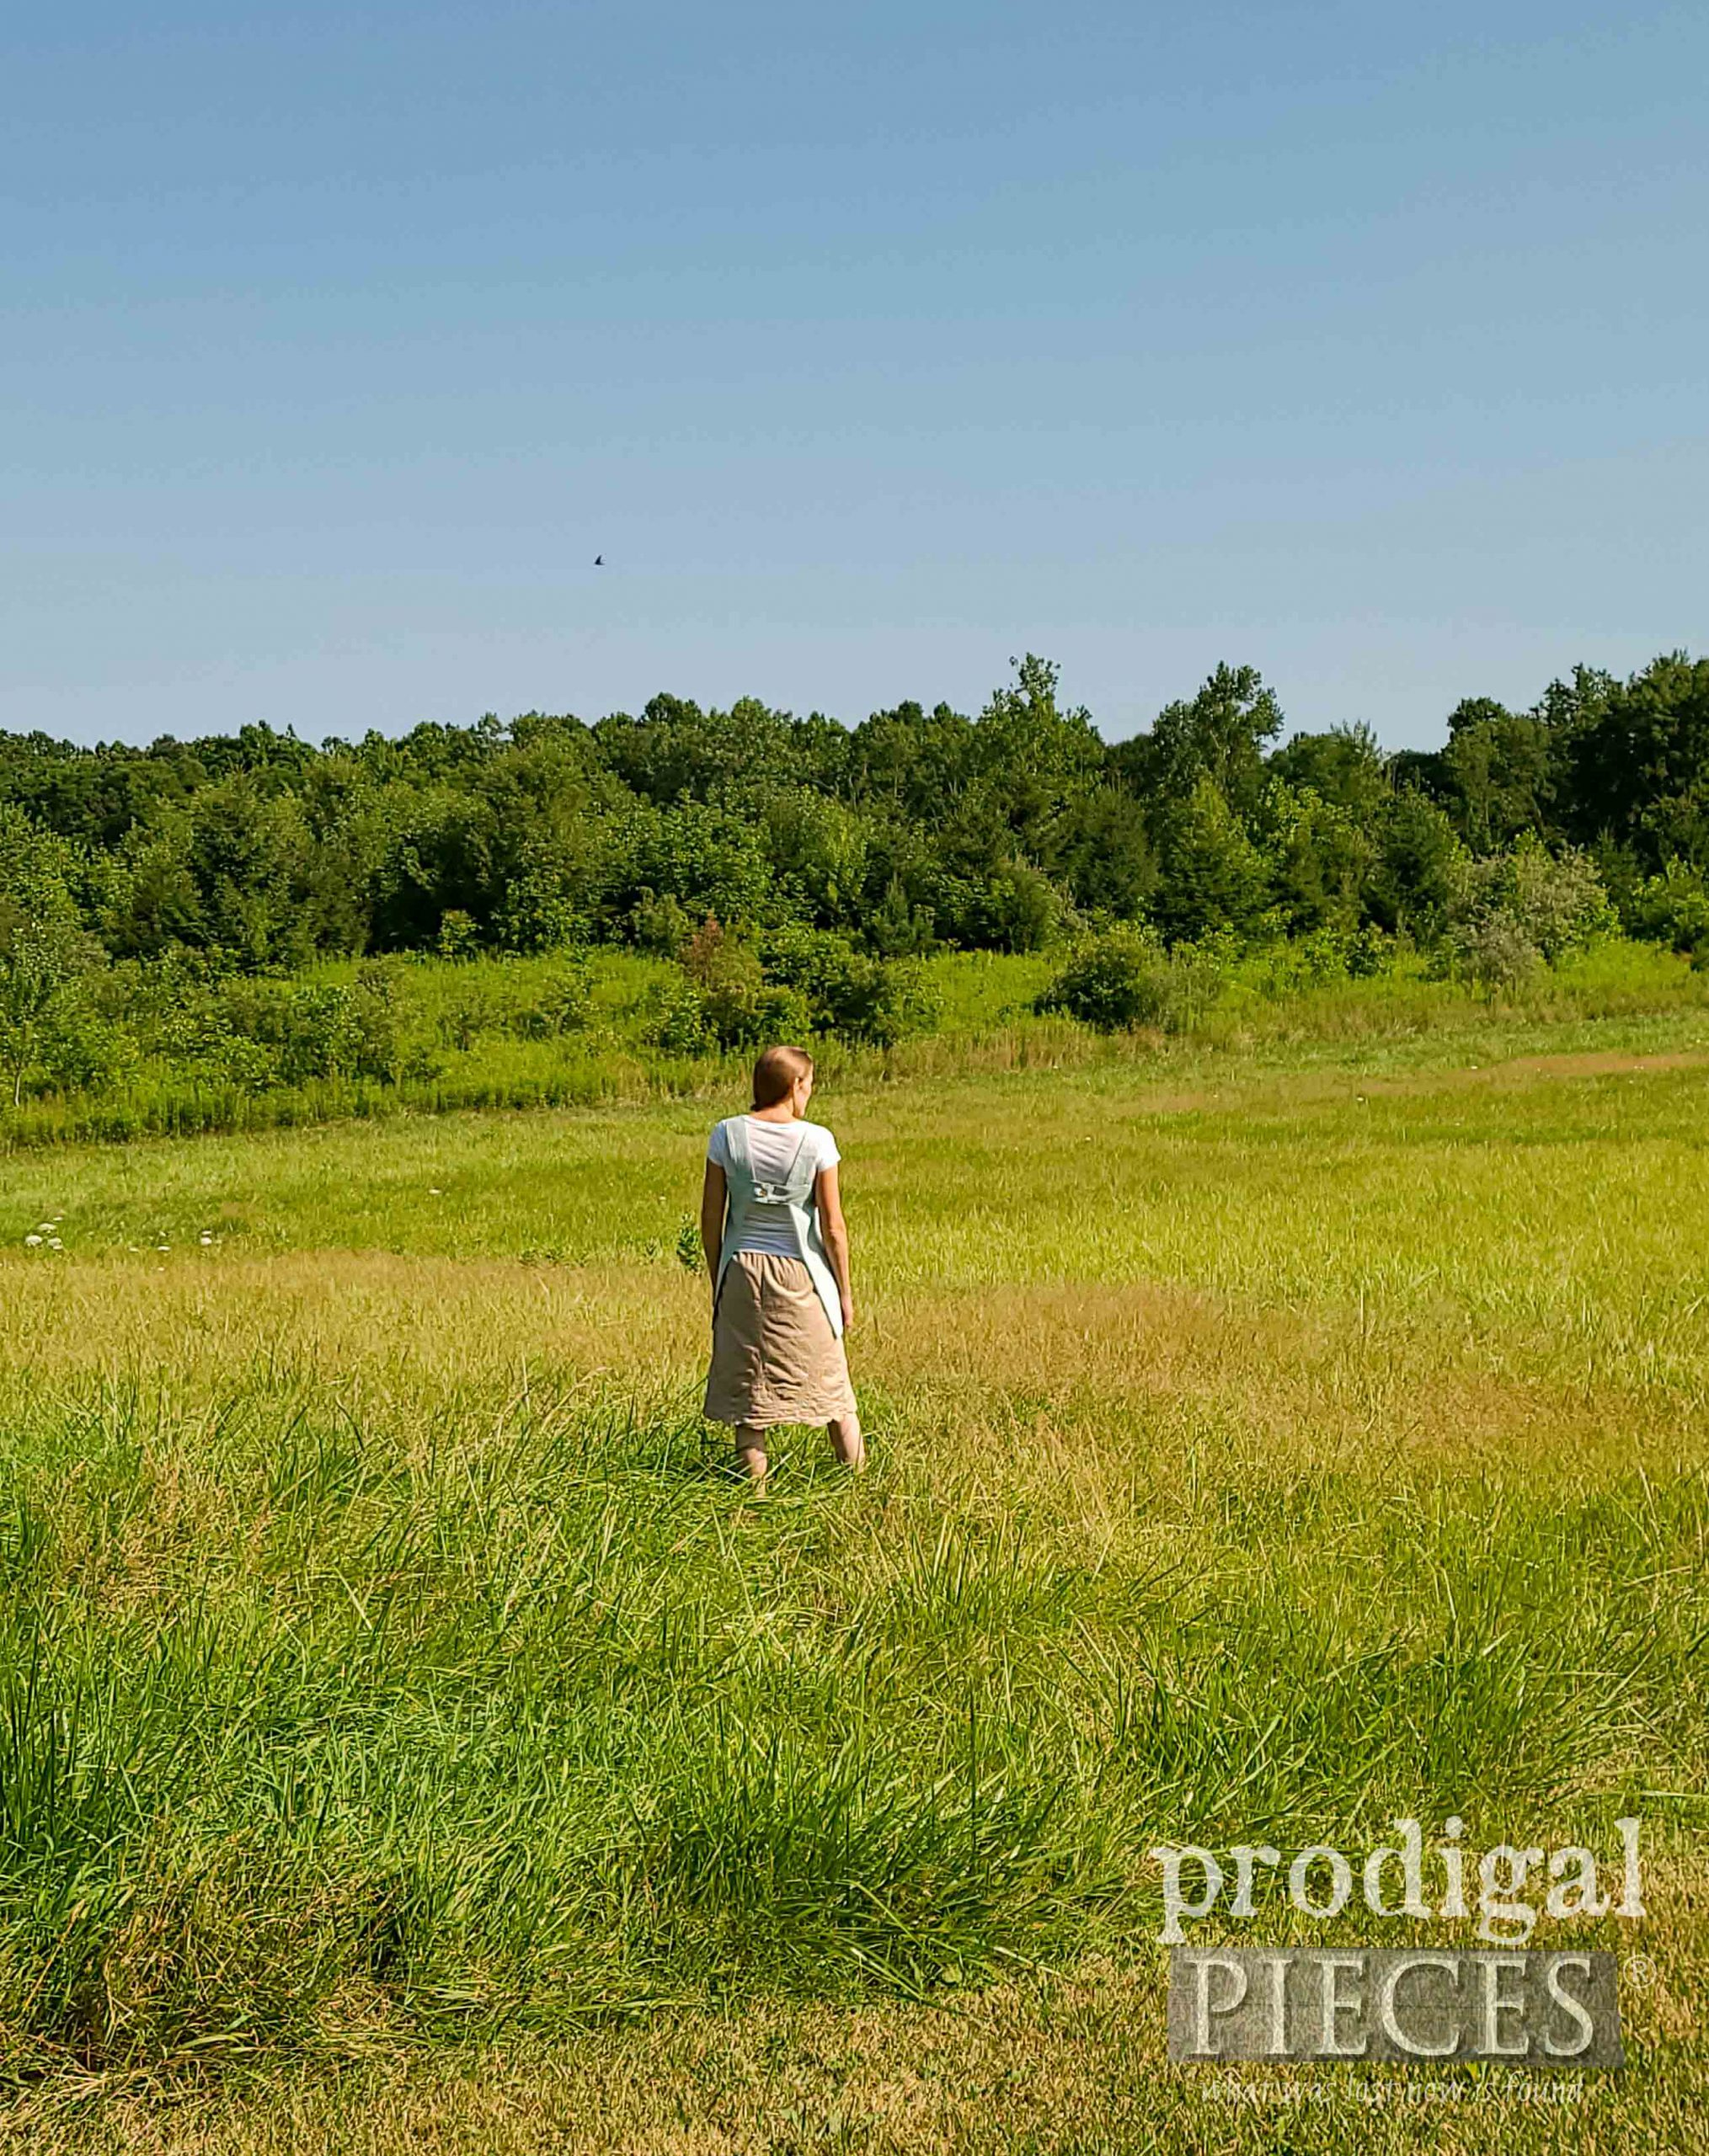 DIY Linen Smock refashioned by Larissa of Prodigal Pieces | prodigalpieces.com #prodigalpieces #diy #handmade #fashion #sewing #upcycled